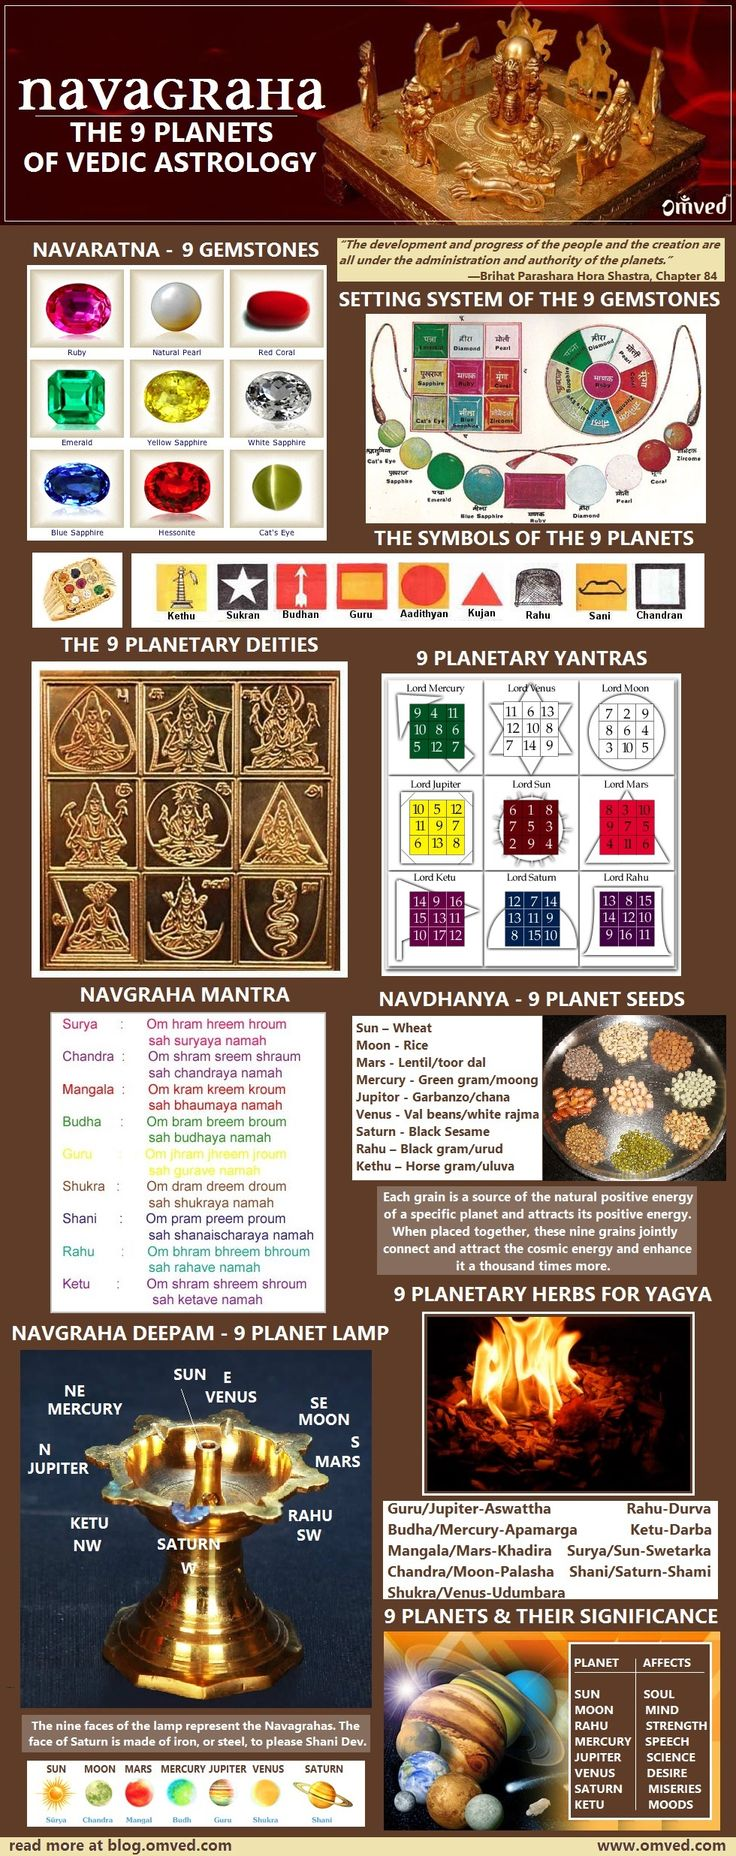 """NAVAGRAHA - 9 PLANETS - VEDIC ASTROLOGY - JYOTISH - The Sanskrit word """"Graha"""" is often loosely translated as planet. The deeper meaning remains hidden. """"Graha"""" refers to an entity that has the power to """"seize, lay hold of, or grasp"""". Graha thus describes the ability of celestial events to either influence or predict occurrences on earth. They are part of the administration of Natural Law, which governs the whole universe. The nine planets infographic - by www.omved.com"""